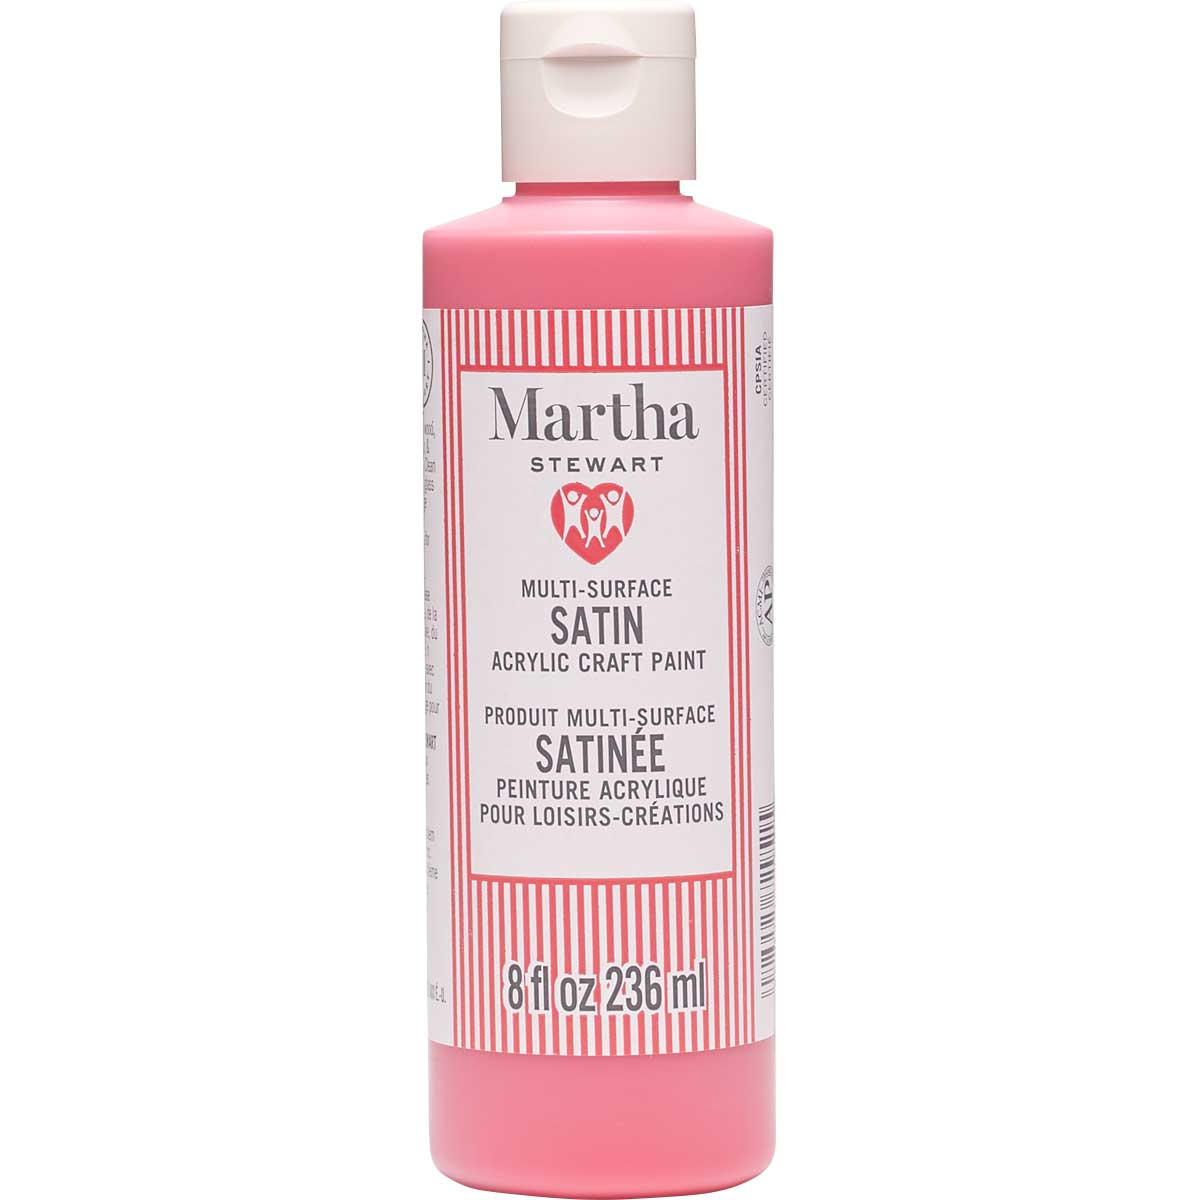 Martha Stewart ® Multi-Surface Satin Acrylic Craft Paint CPSIA - Stop Sign Red, 8 oz. - 72951